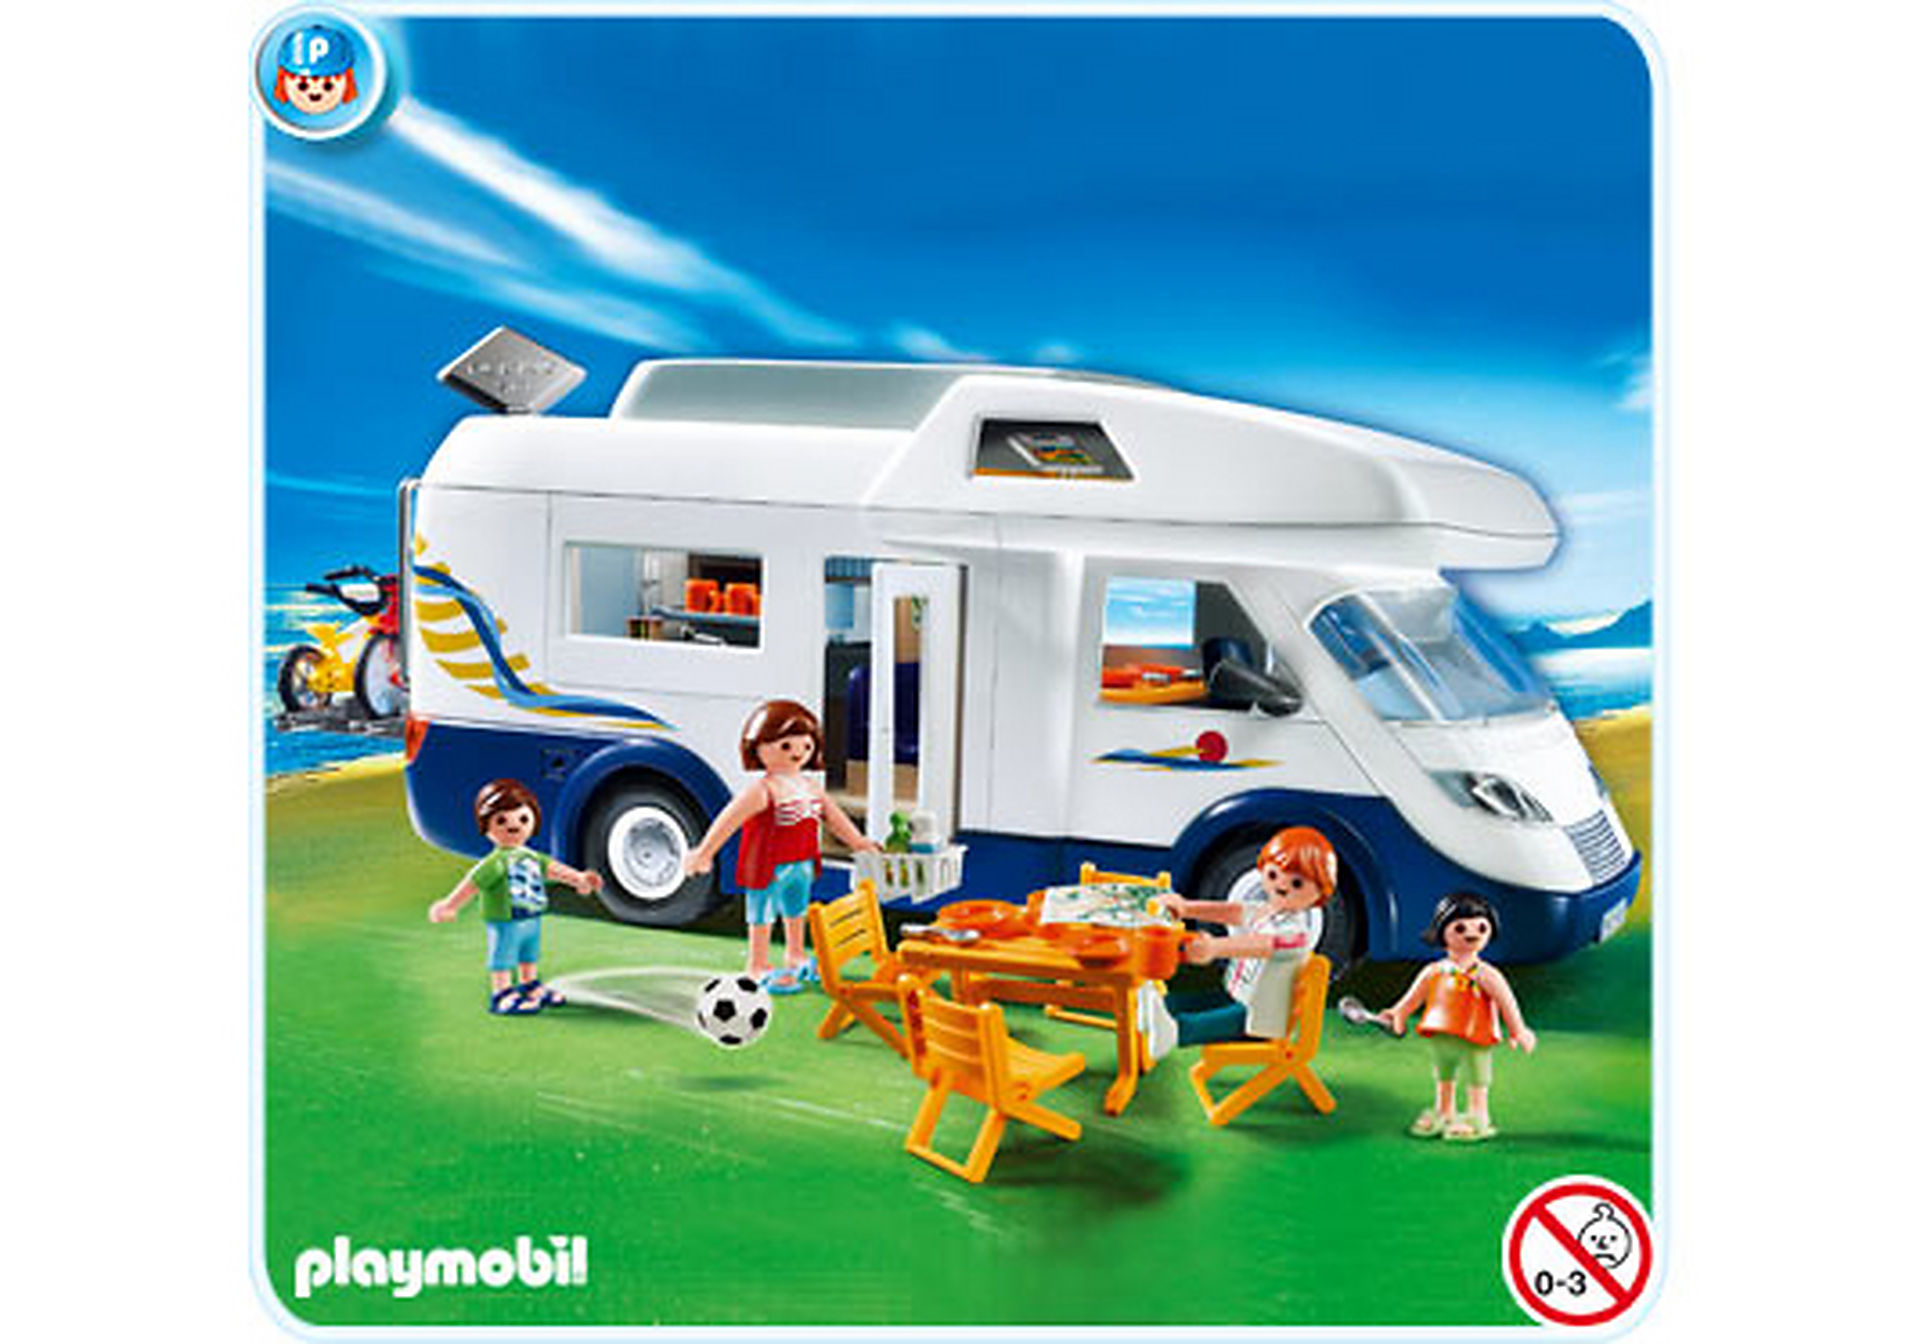 http://media.playmobil.com/i/playmobil/4859-A_product_detail/Familien-Wohnmobil